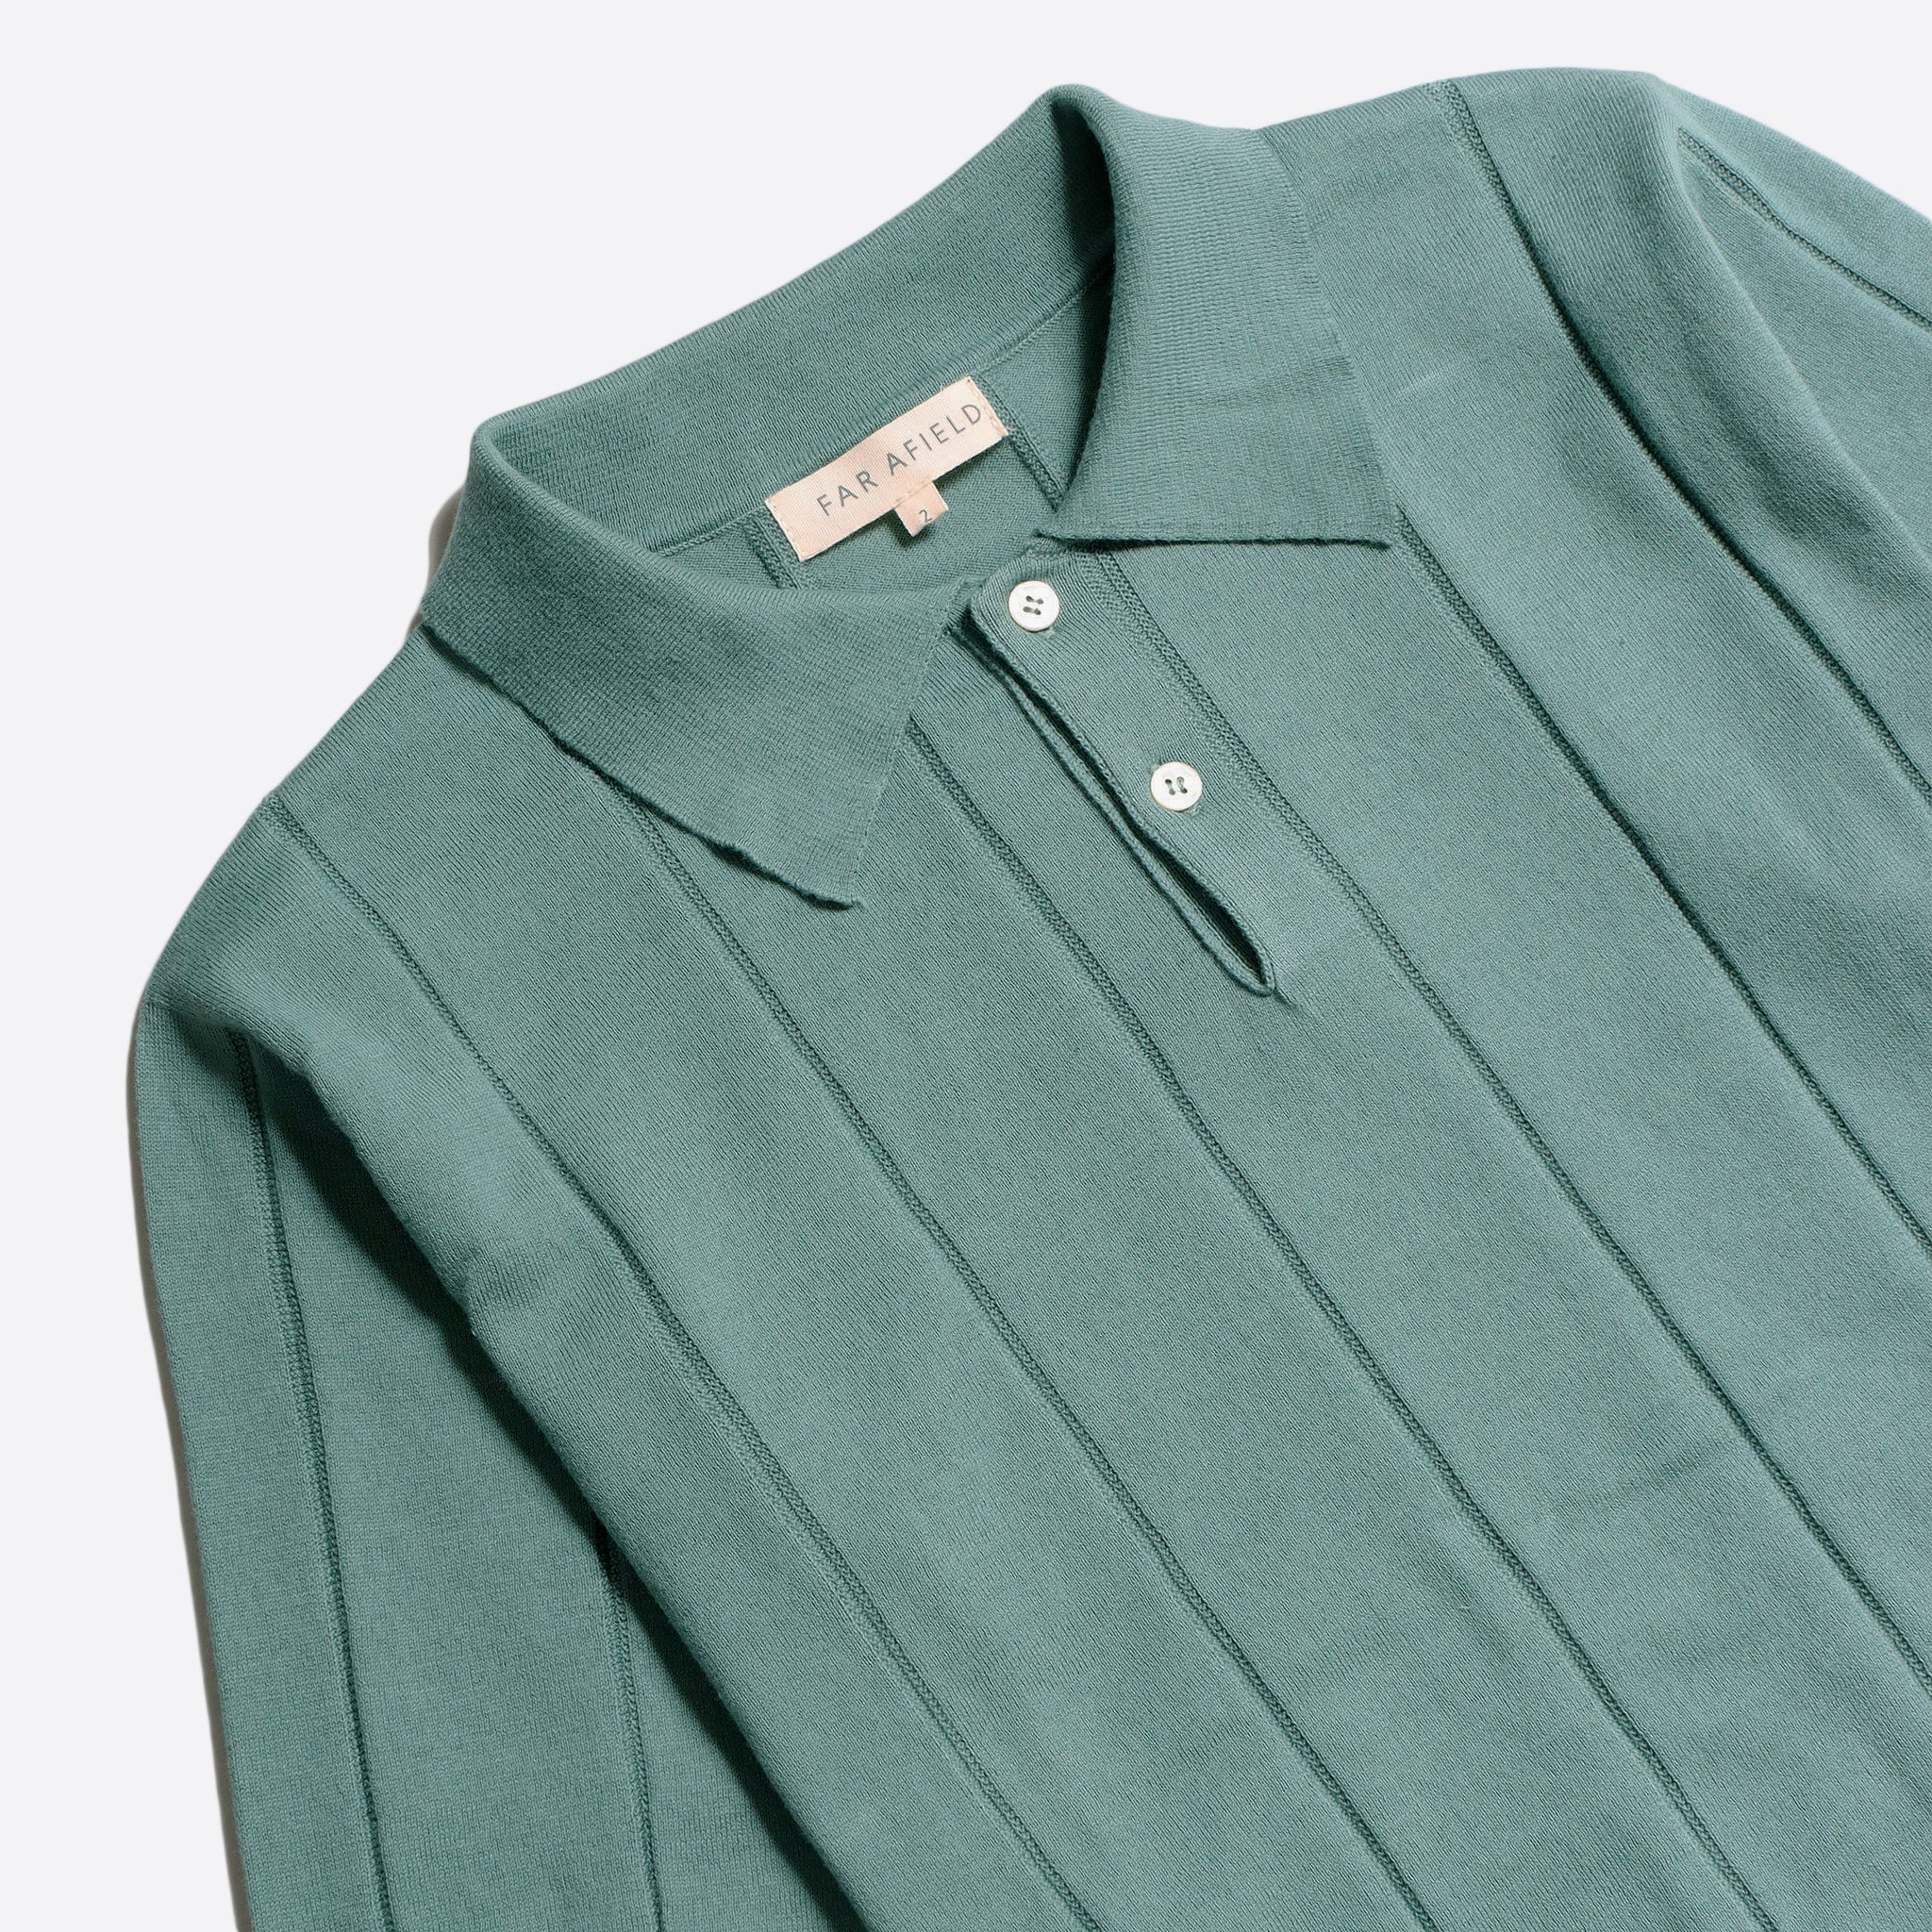 Far Afield Jacobs Short Sleeve Polo a Sagebrush Green Organic Cotton FabricMid Century Inspired 4